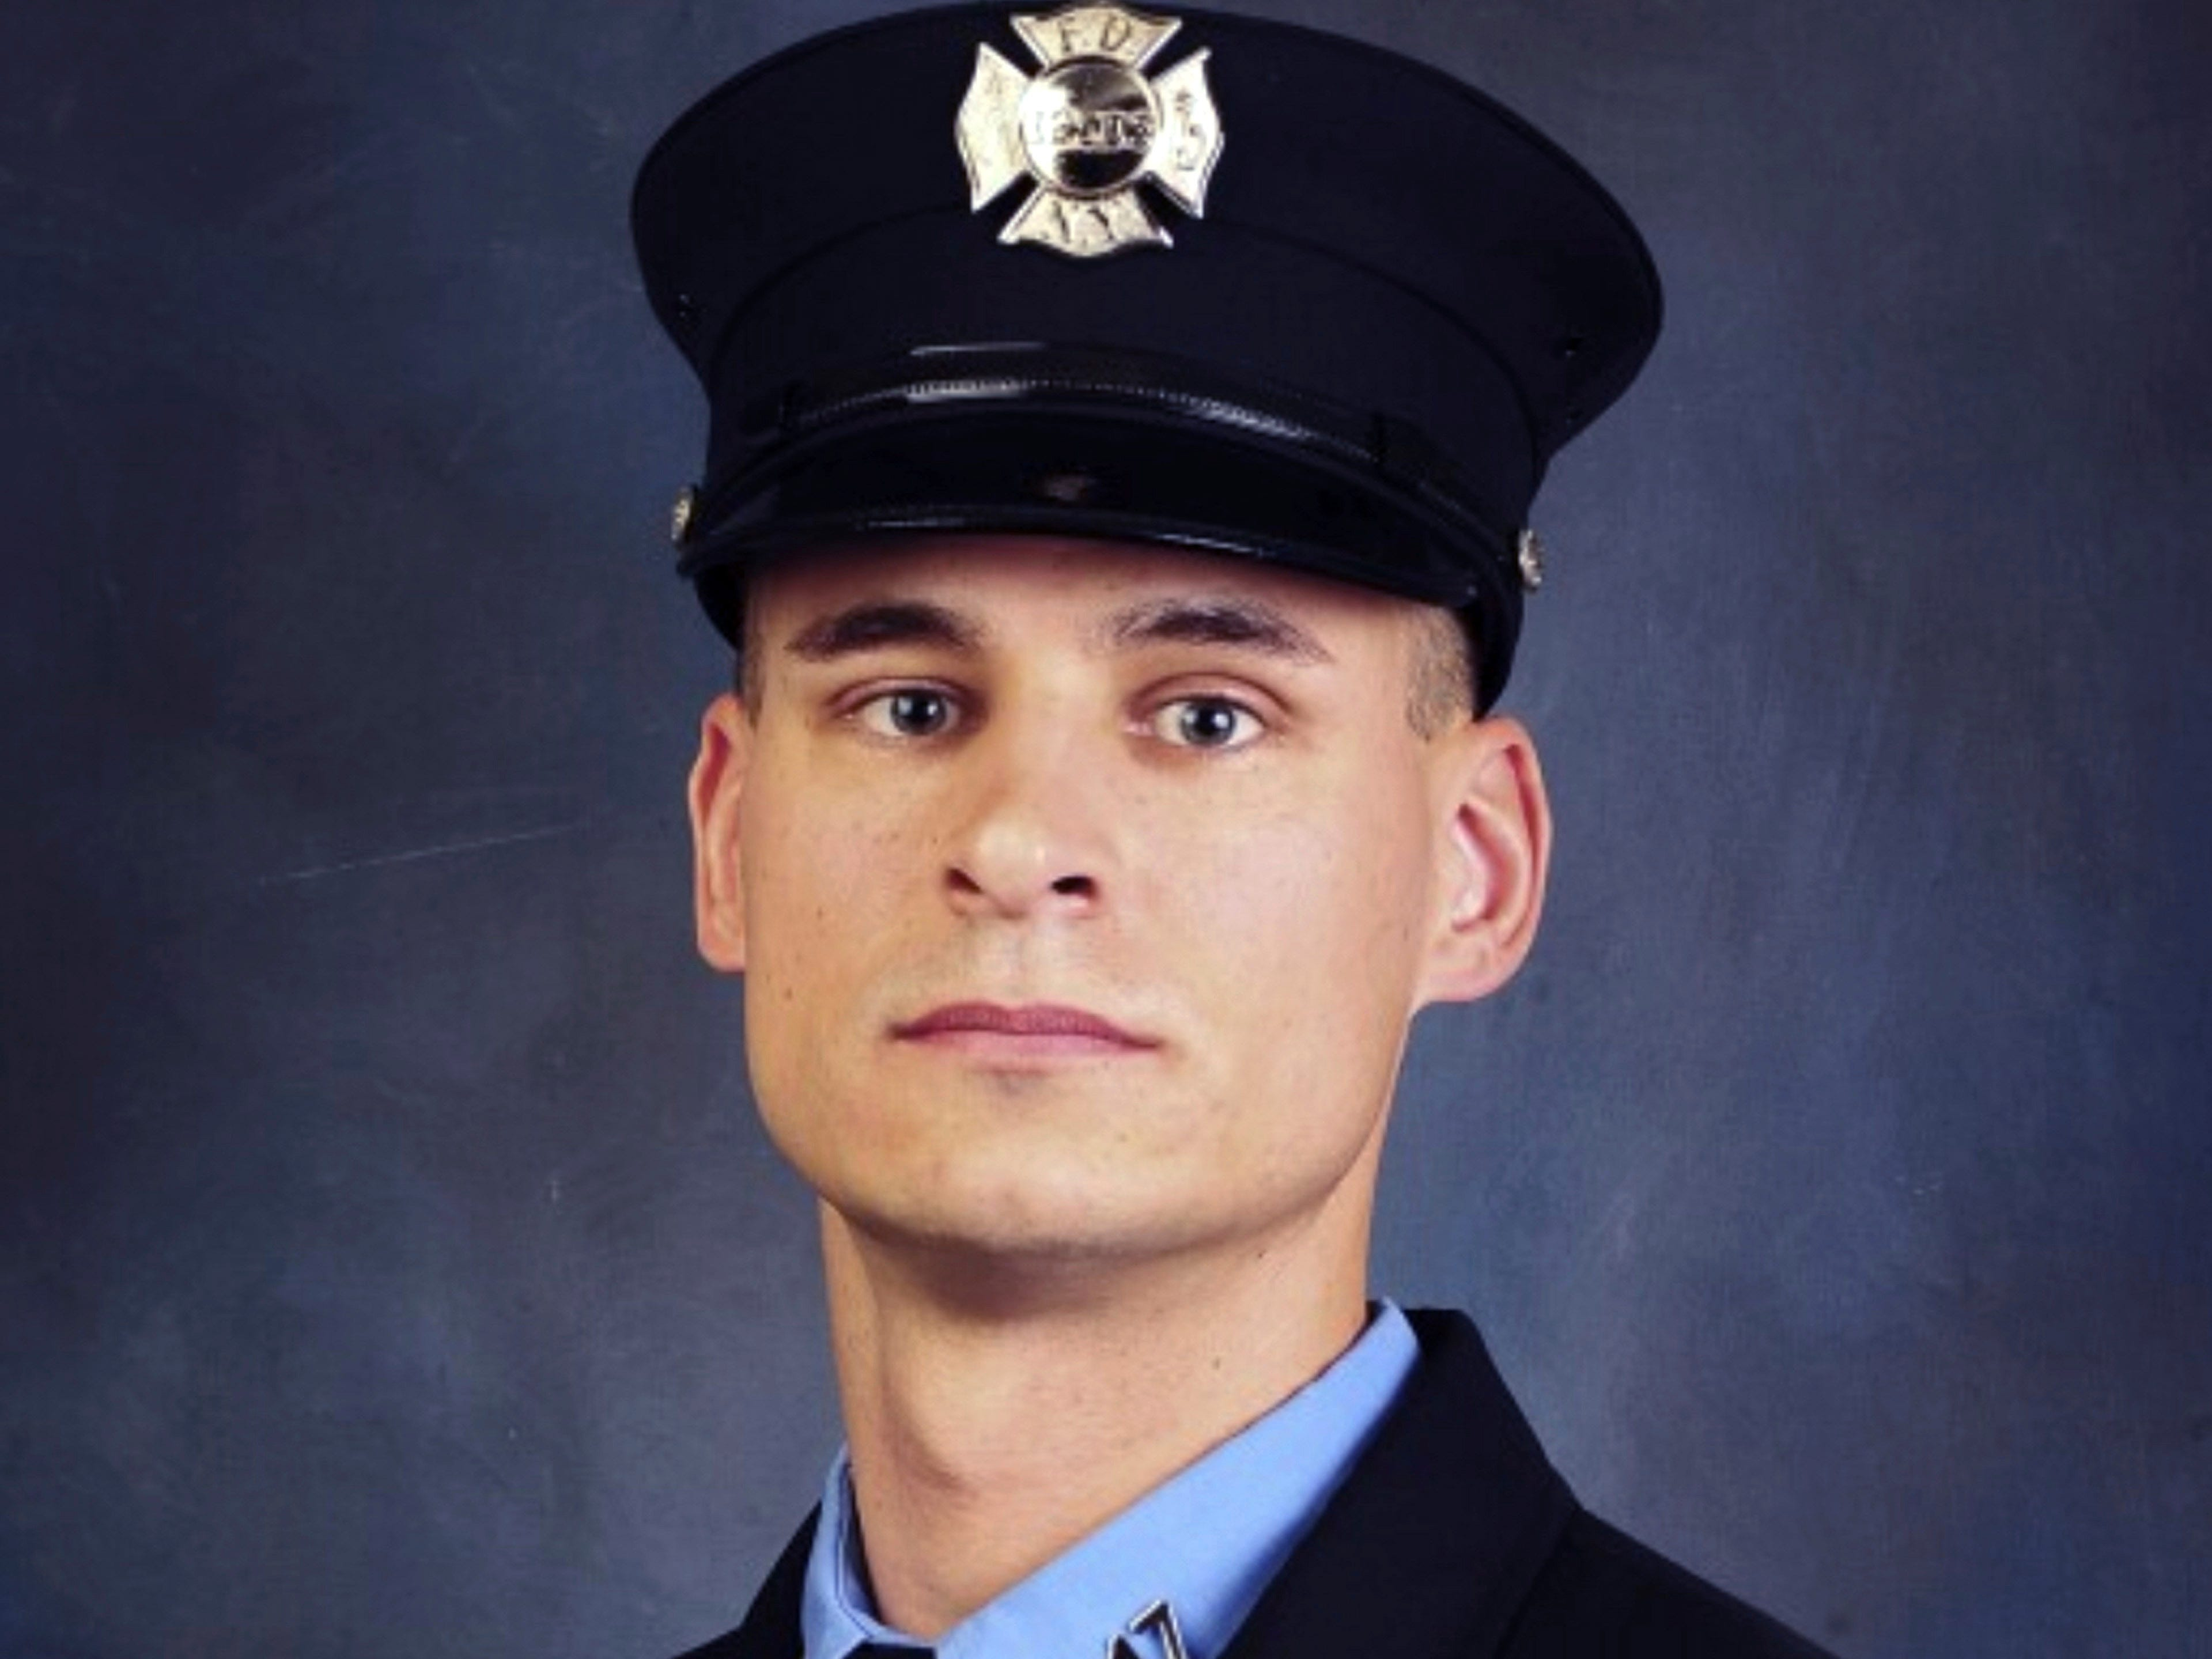 This undated photo, provided in New York on  April 9, shows Fire Department of New York firefighter Christopher Slutman. Slutman, a 15-year member of the department, was among three American service members killed by a roadside bomb in Afghanistan on April 8. His parents live in York County.